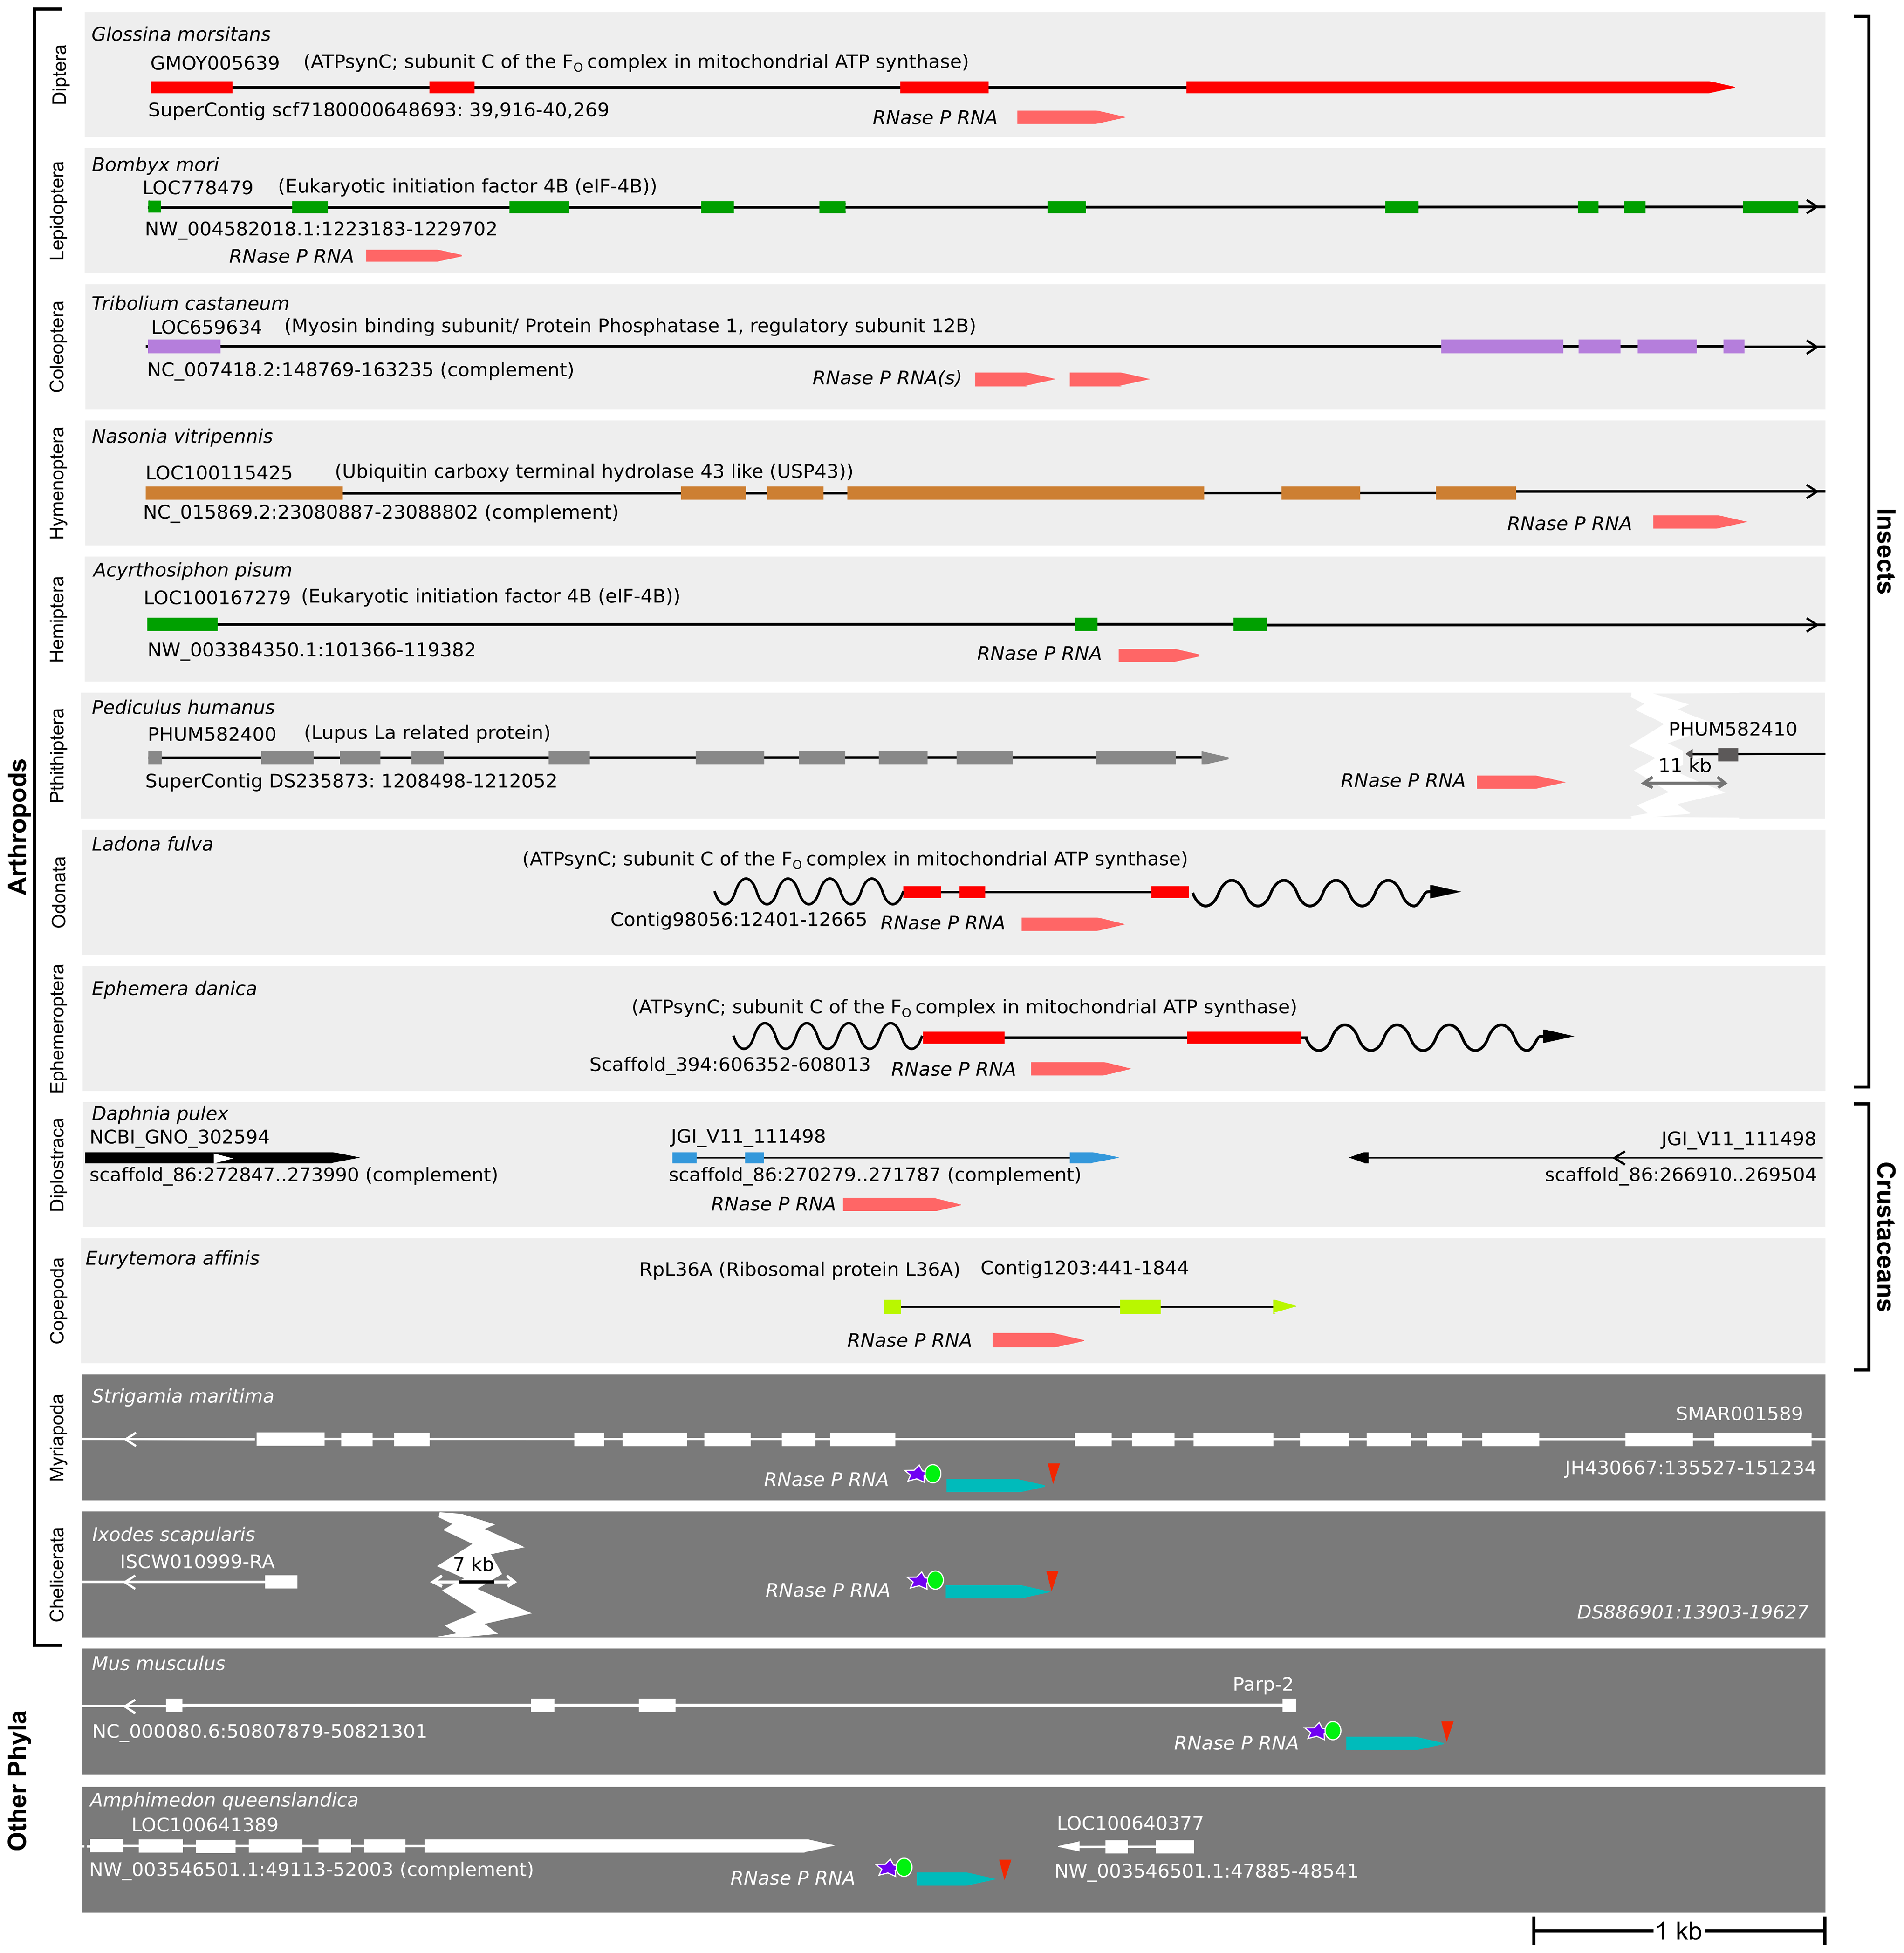 Insects and crustaceans have <i>RPR</i> genes embedded in <i>pol II</i> recipient genes, while other animals have independent <i>pol III</i> genes.